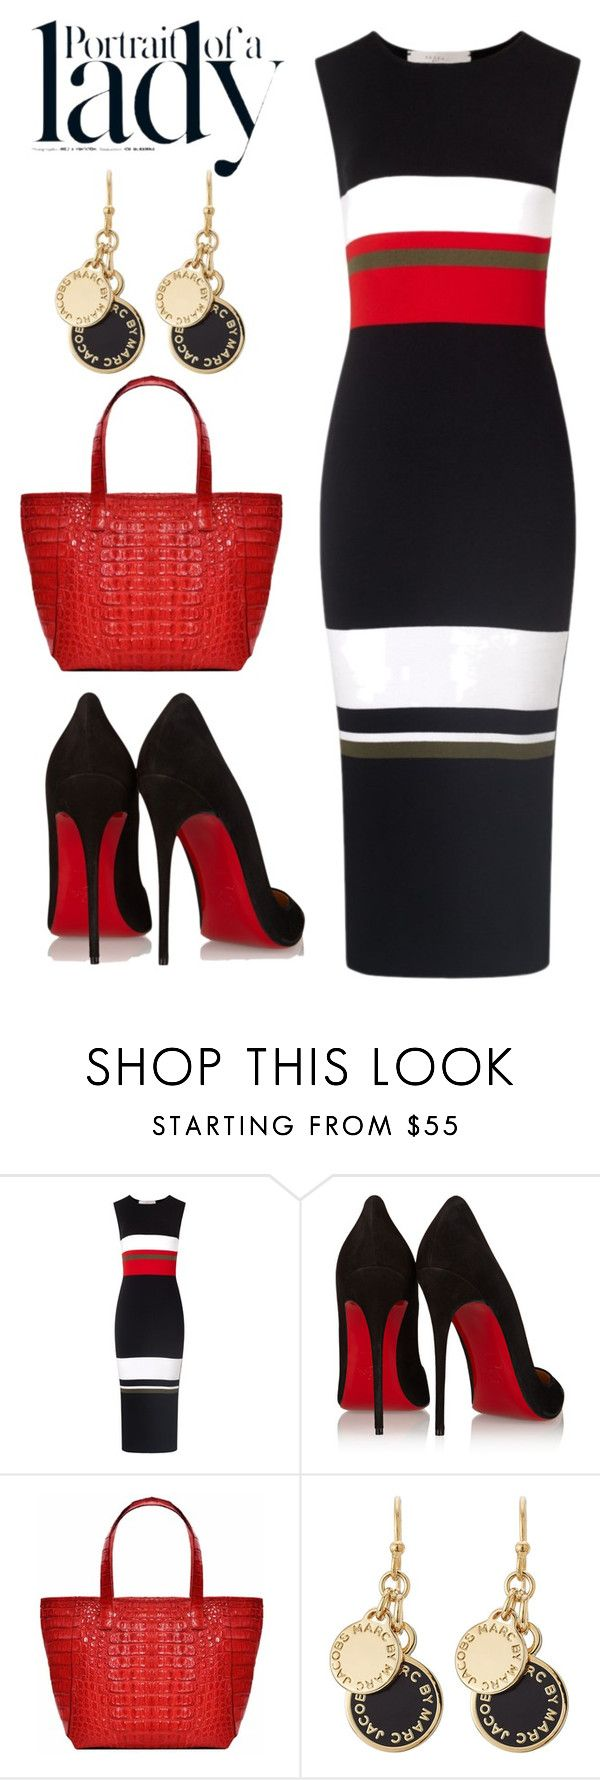 Red-Black-Gold by kim-mcculley ❤ liked on Polyvore featuring moda, Preen, Christian Louboutin, IKI, Marc by Marc Jacobs e Inez Vinoodh